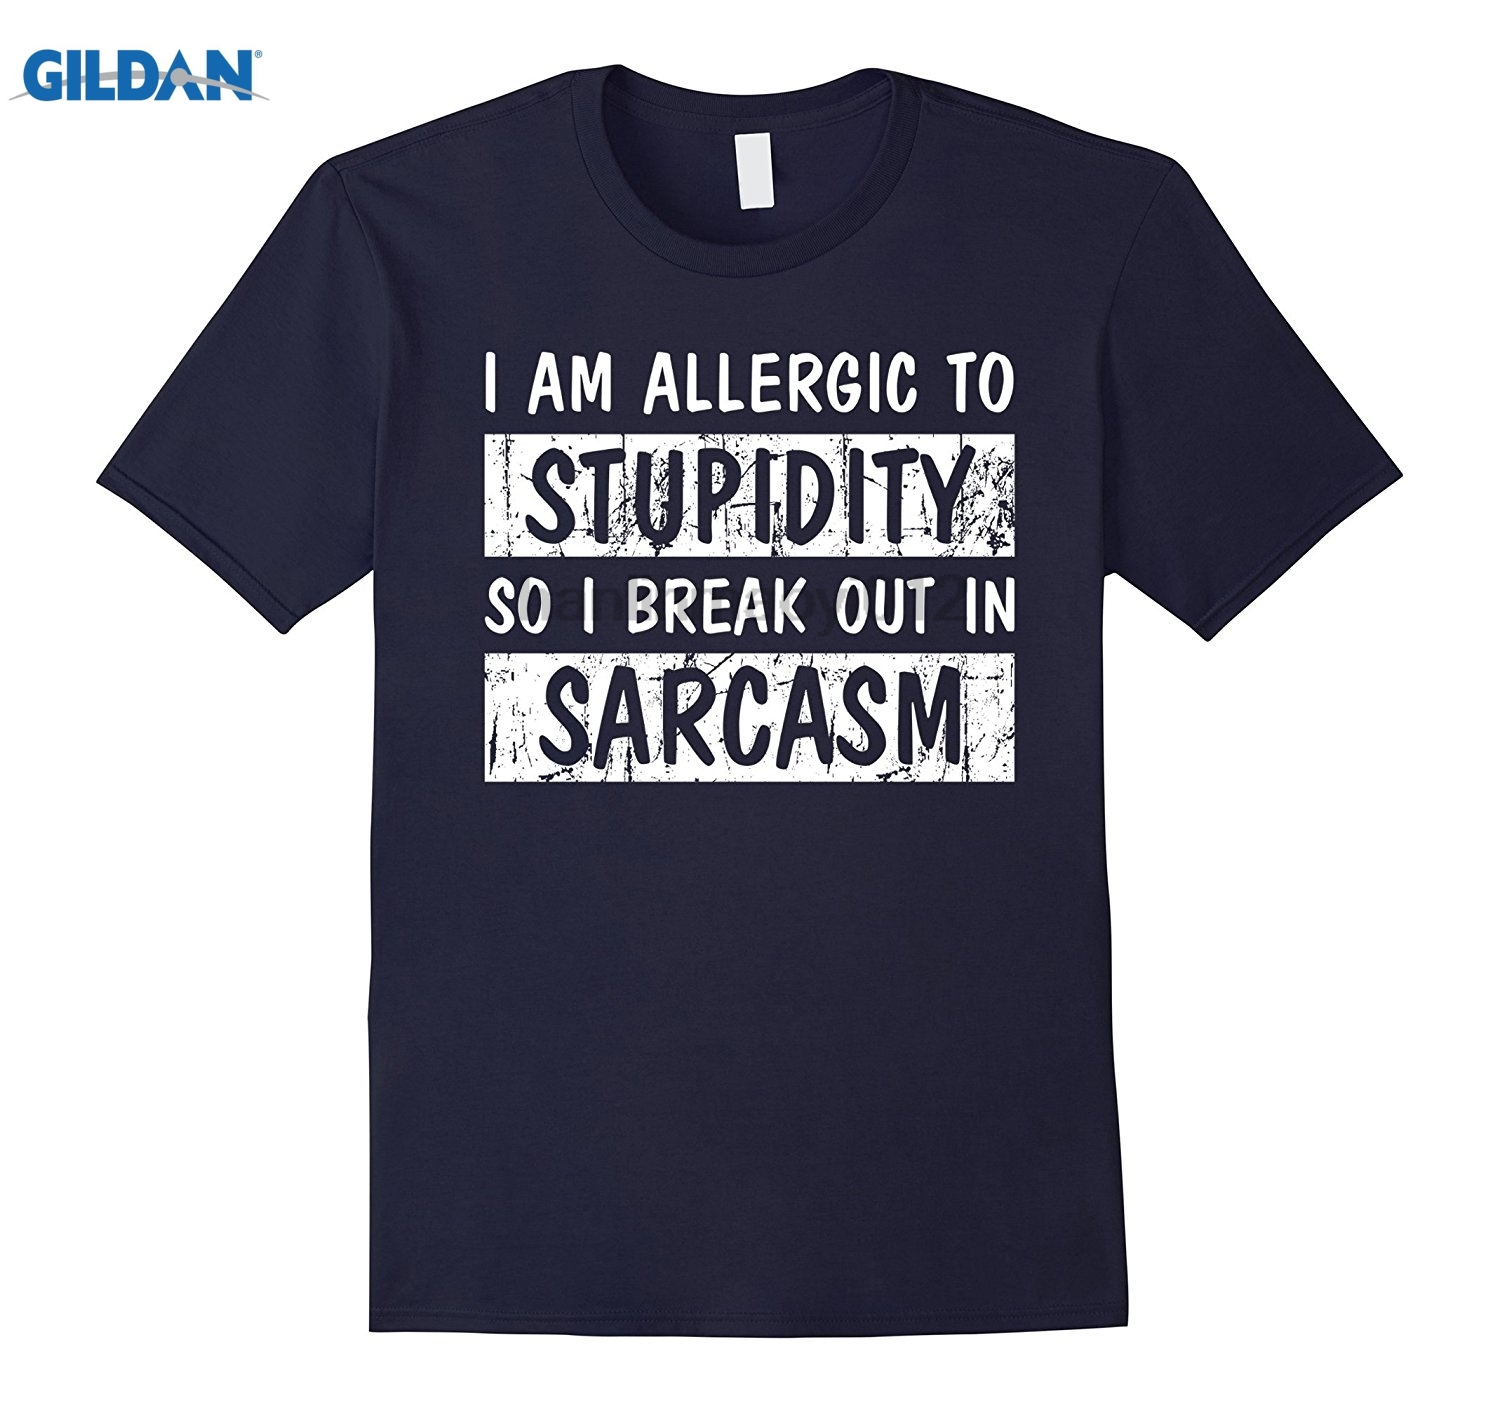 GILDAN Im Allergic To Stupidity So I Break Out In Sarcasm Shirt Hot Womens T-shirt